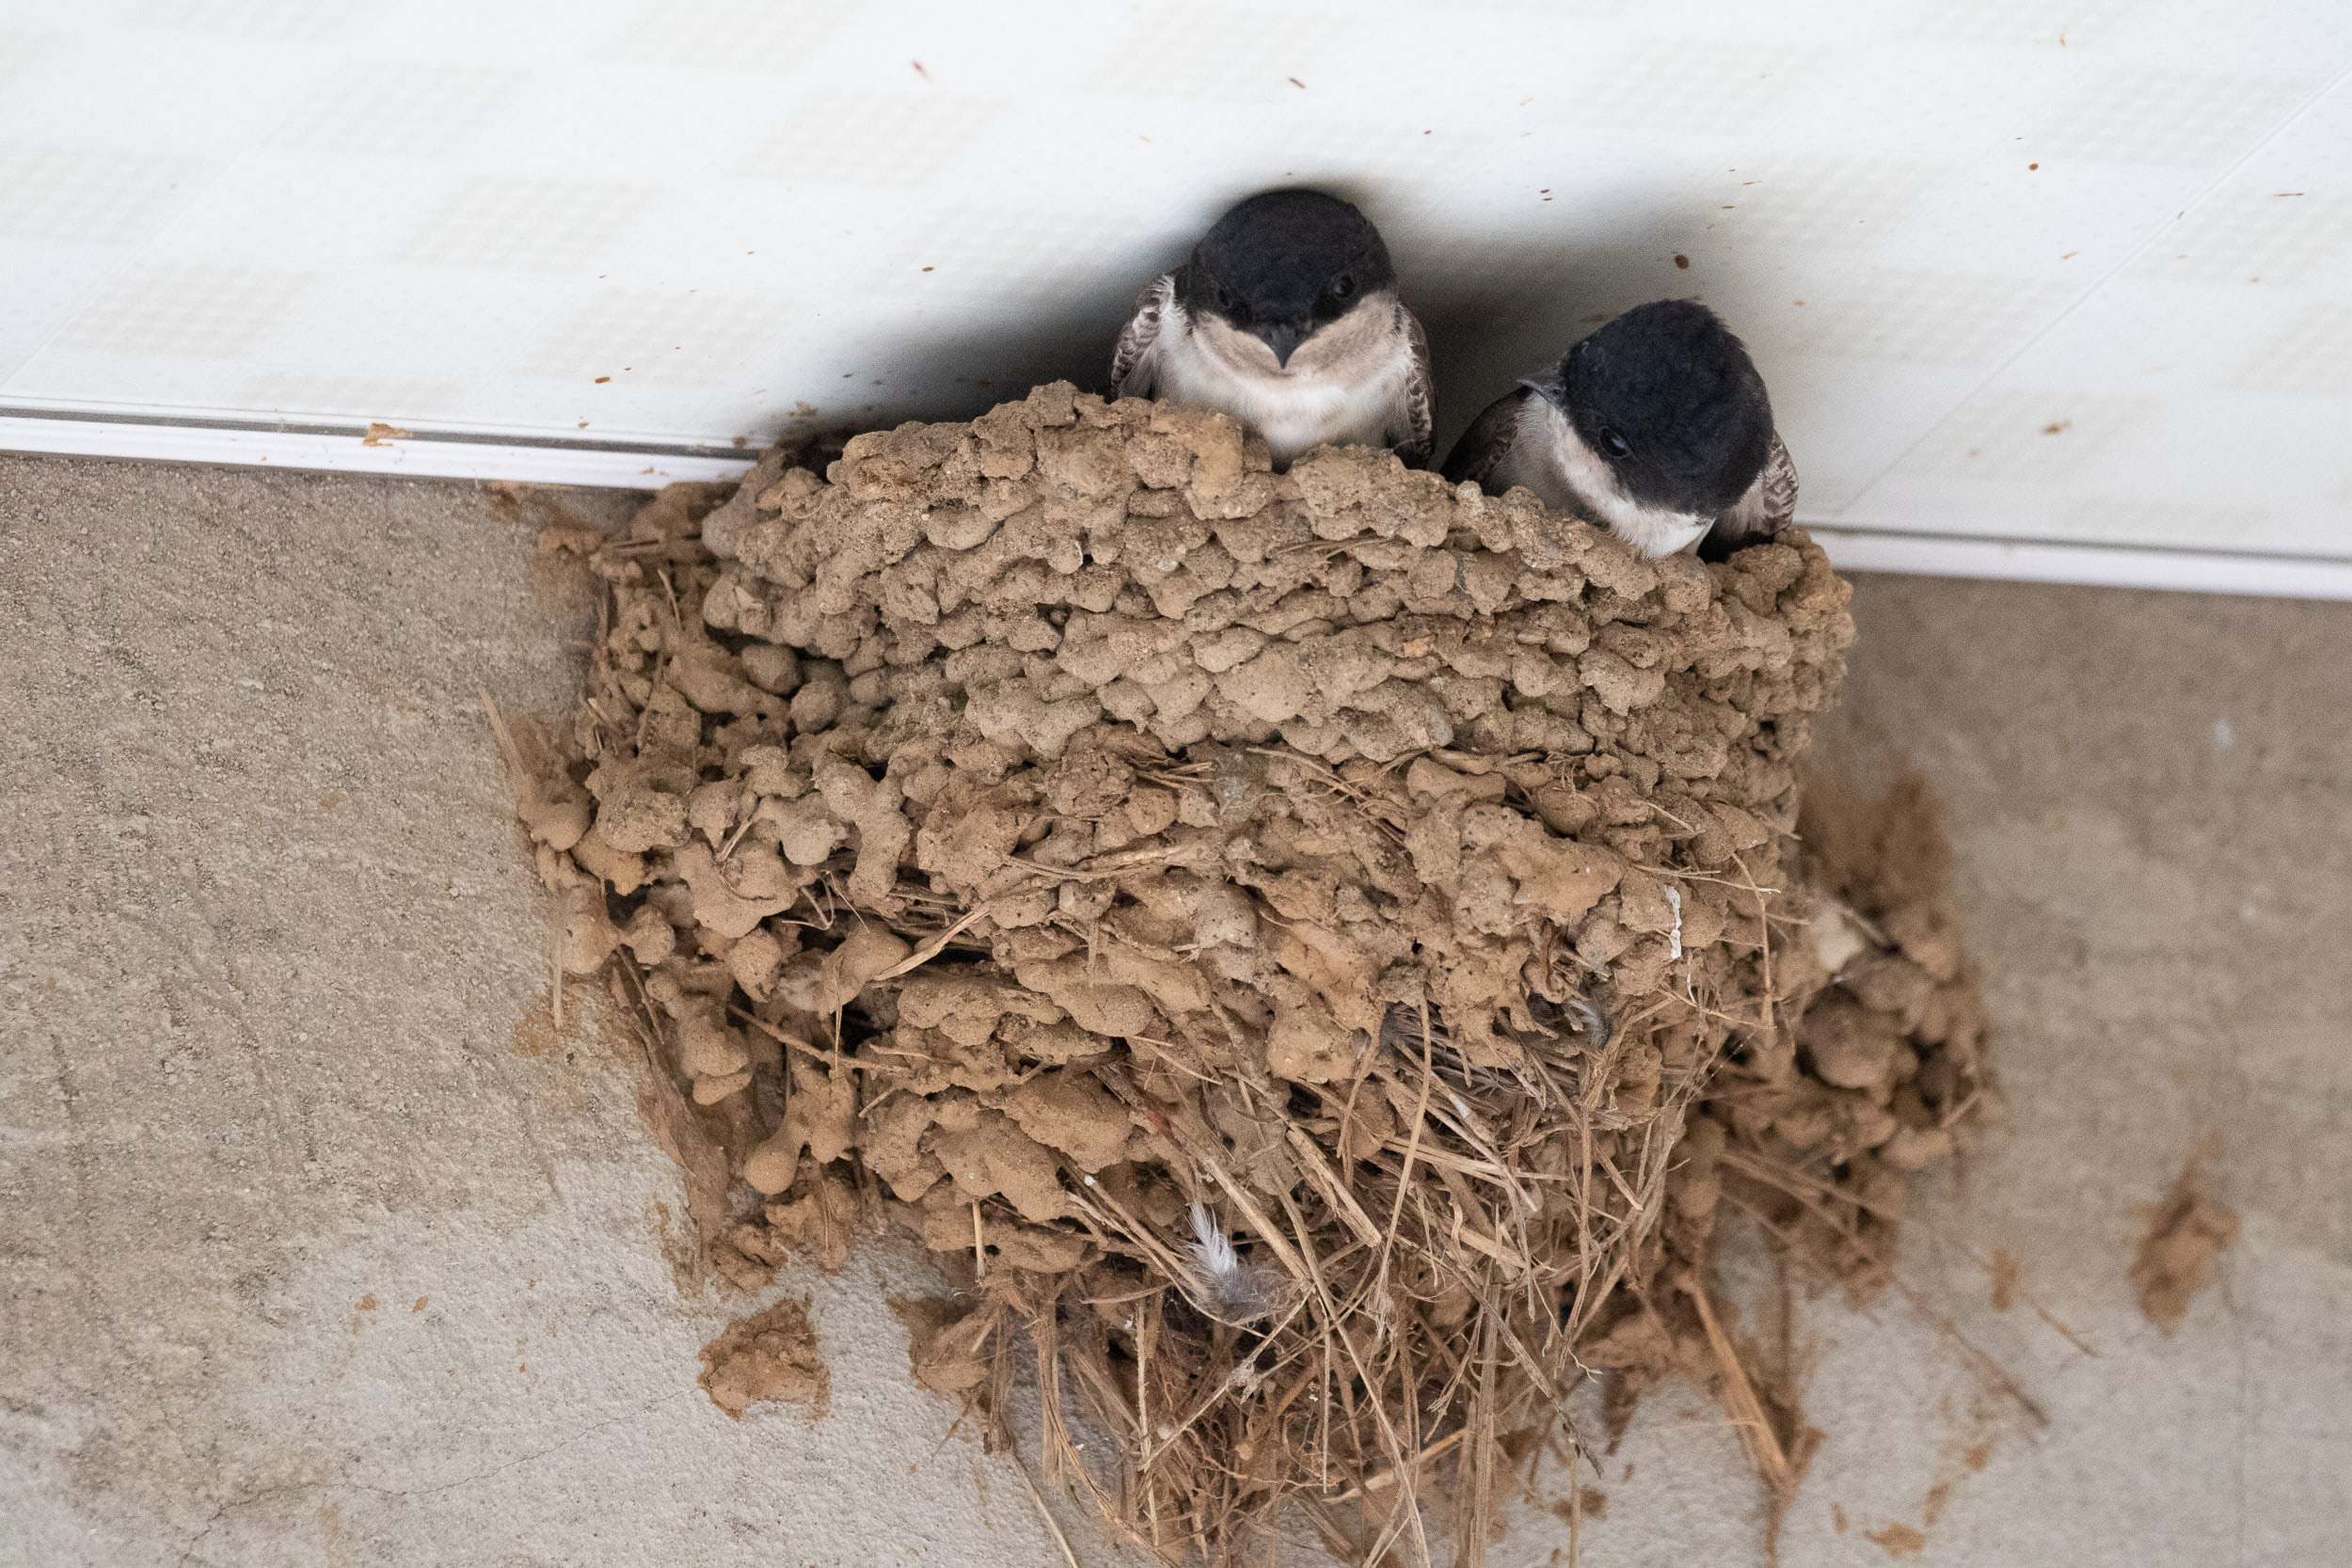 August 21st.  Ruslan's guesthouse not only hosts the BRC family during the season, but now also hosts a family of House Martins. The birds come back to the nest to roost during the nights.